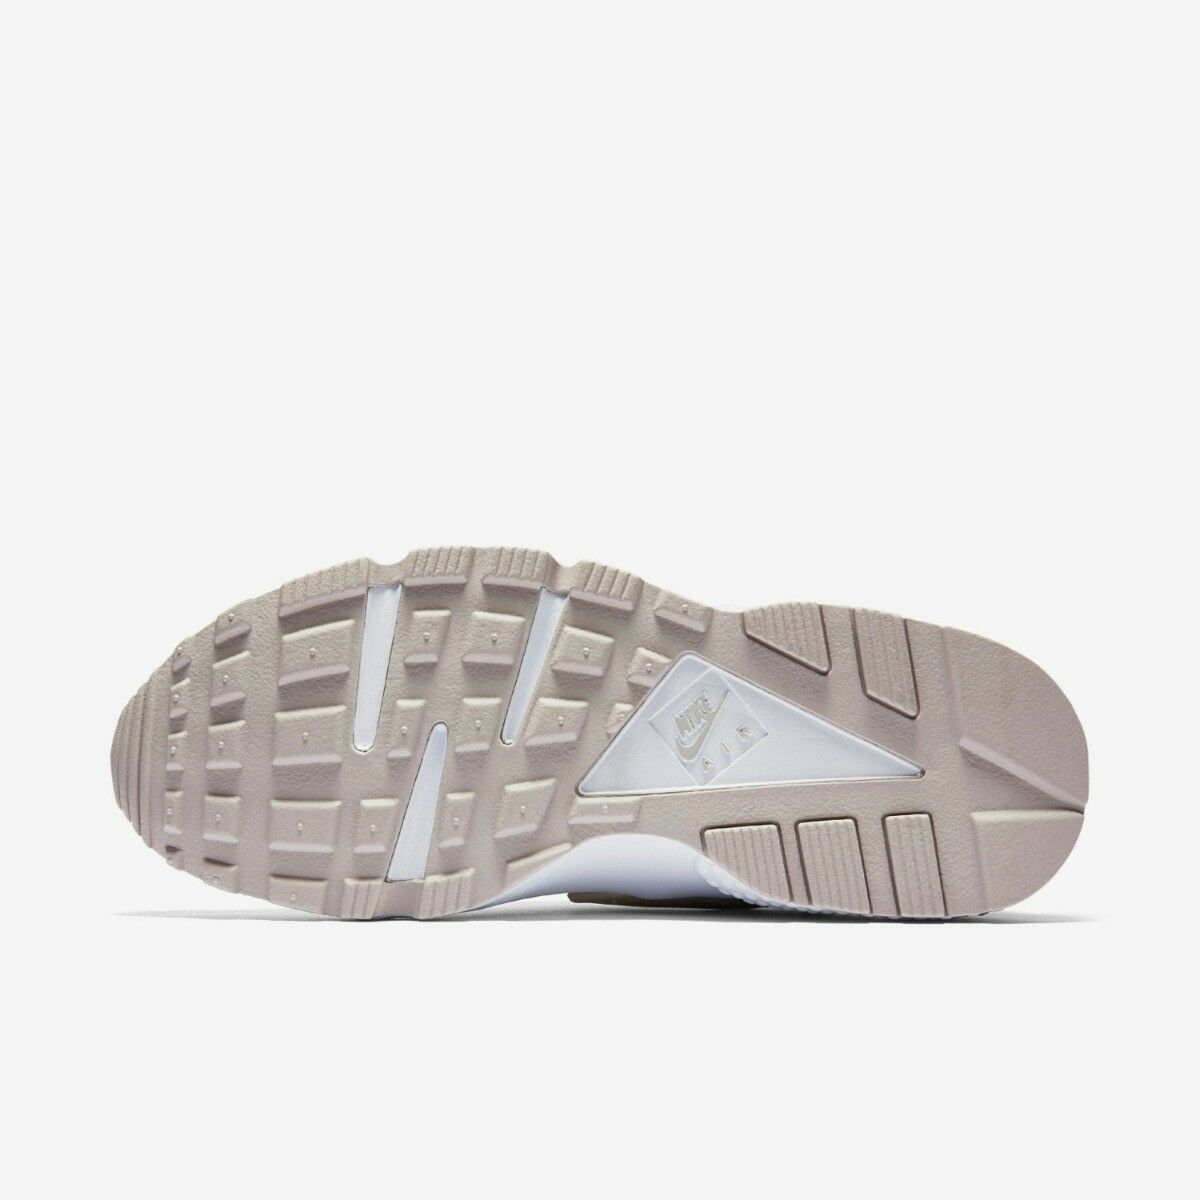 Nike Damen Luft Huarache Run UK Größe 4.5 Phantom Iron hell Iron Phantom Turnschuhe 025af8